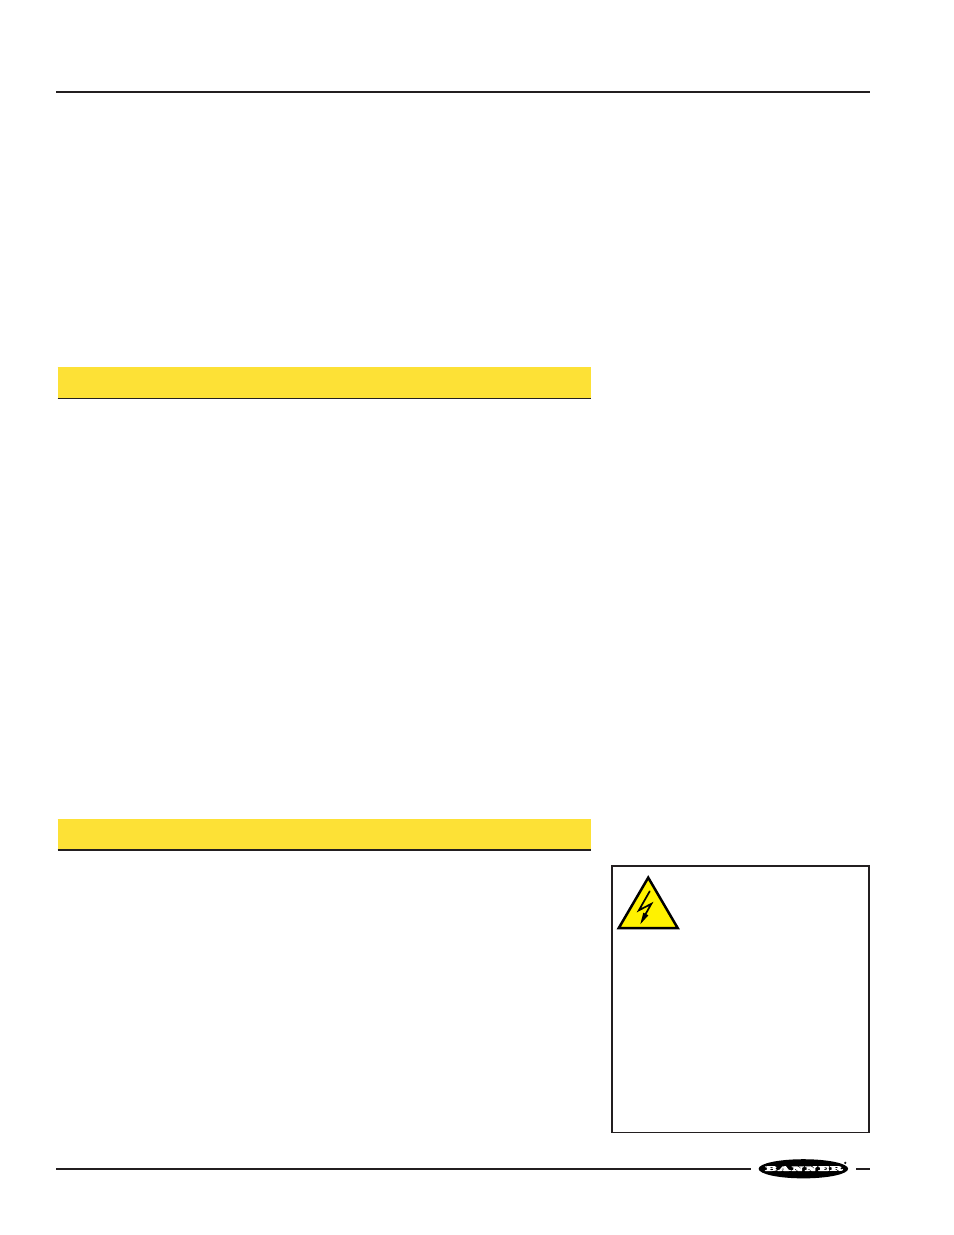 Emergency Stop Wiring Regulations Solutions Open Close Switch Diagram E Safety Module Model Es Fa 6g Requirements Amazing Electrical On Off Symbols Ensign Ideas